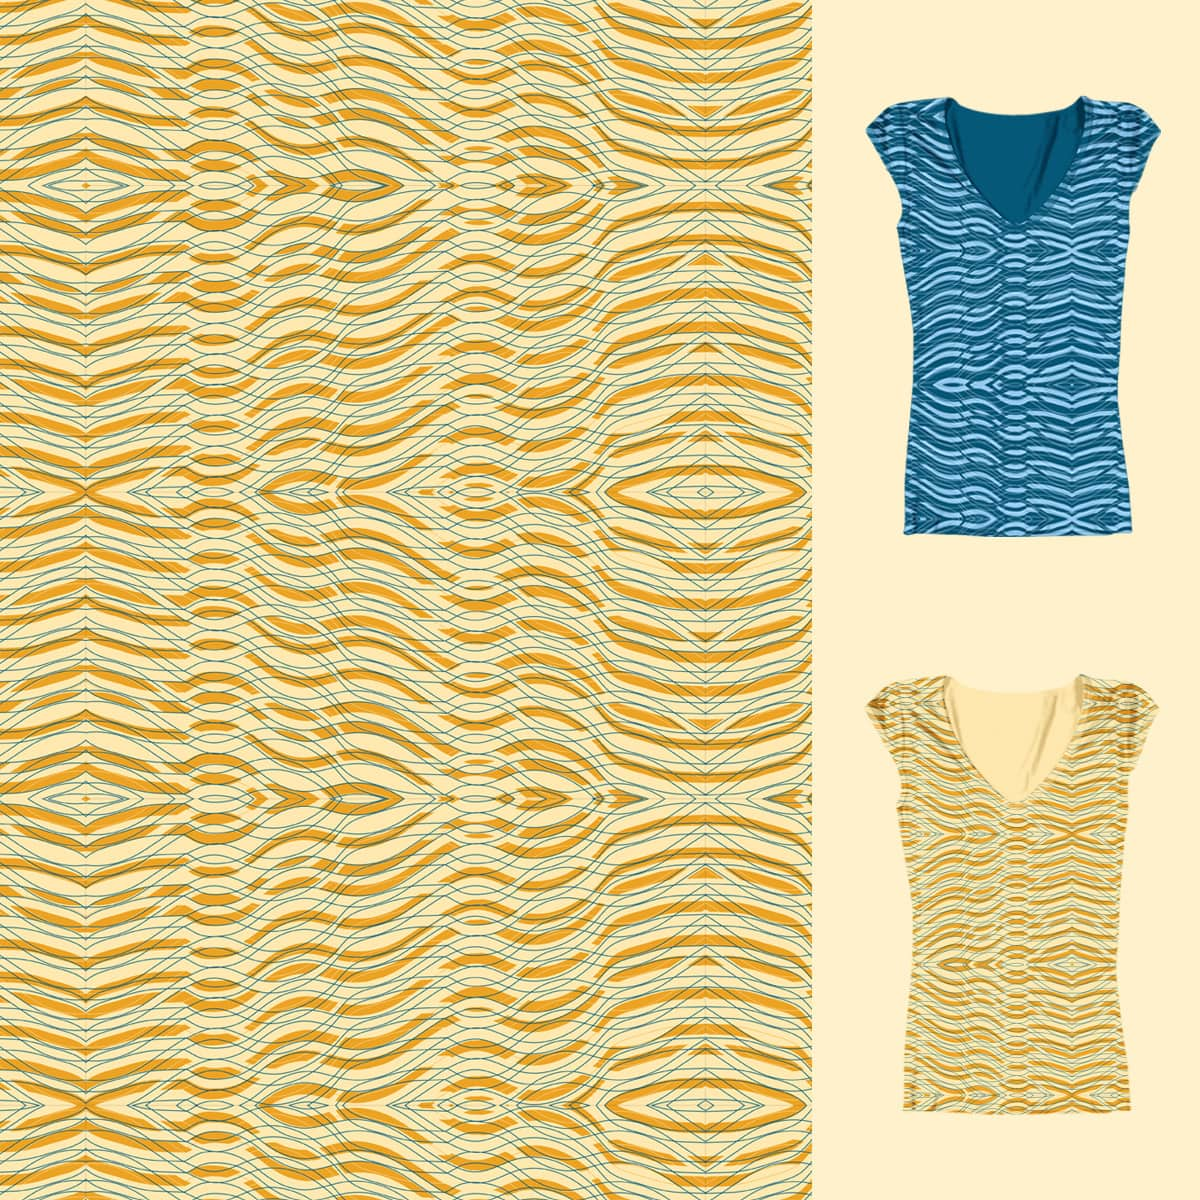 Summer Waves by leleprates on Threadless